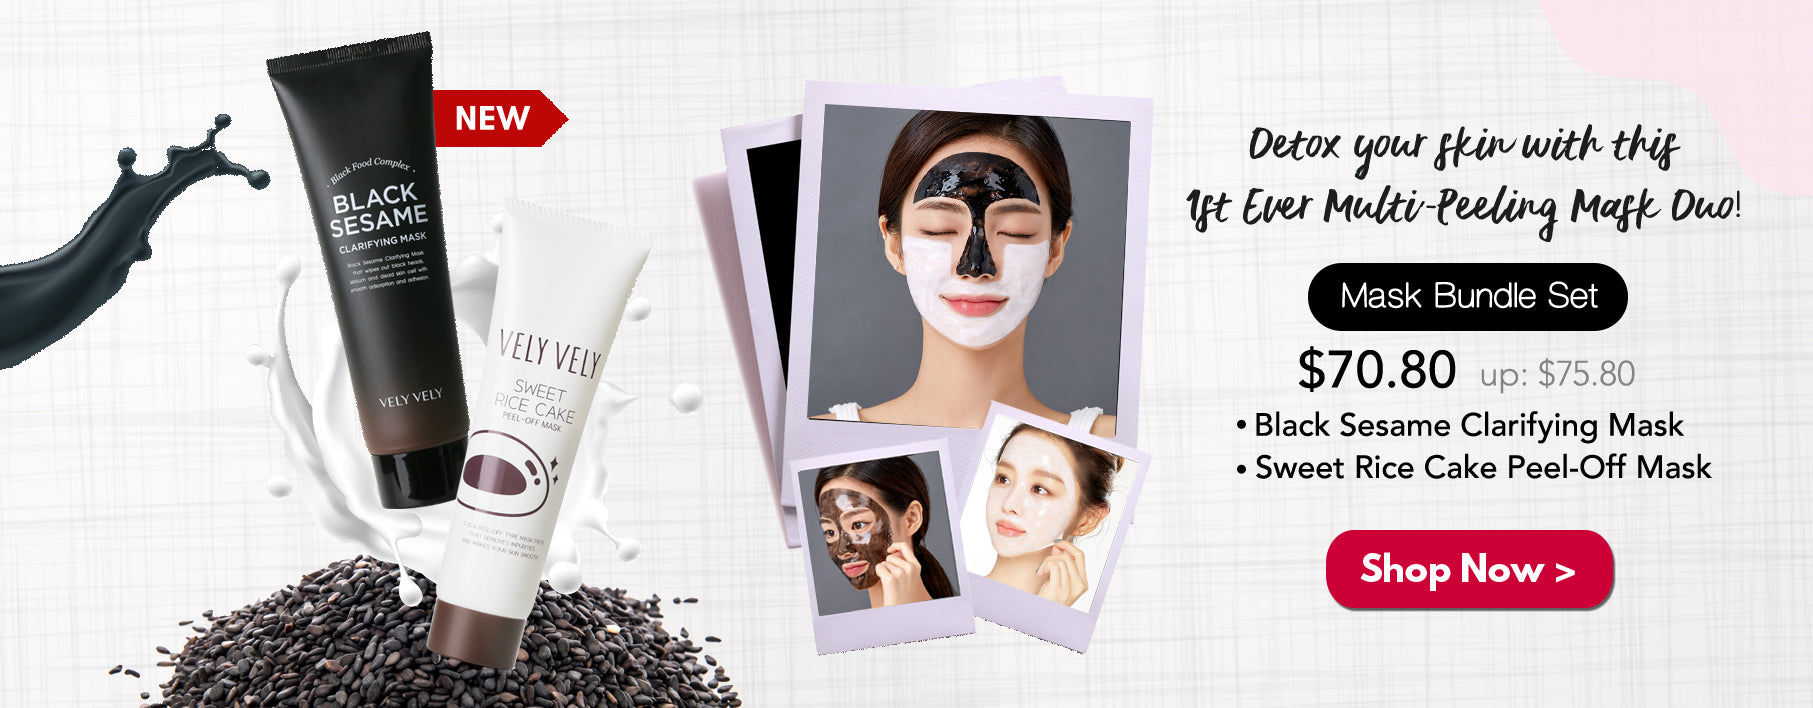 Vely Vely Sweet Rice Cake & Black Sesame Clarifying Mask Bundle